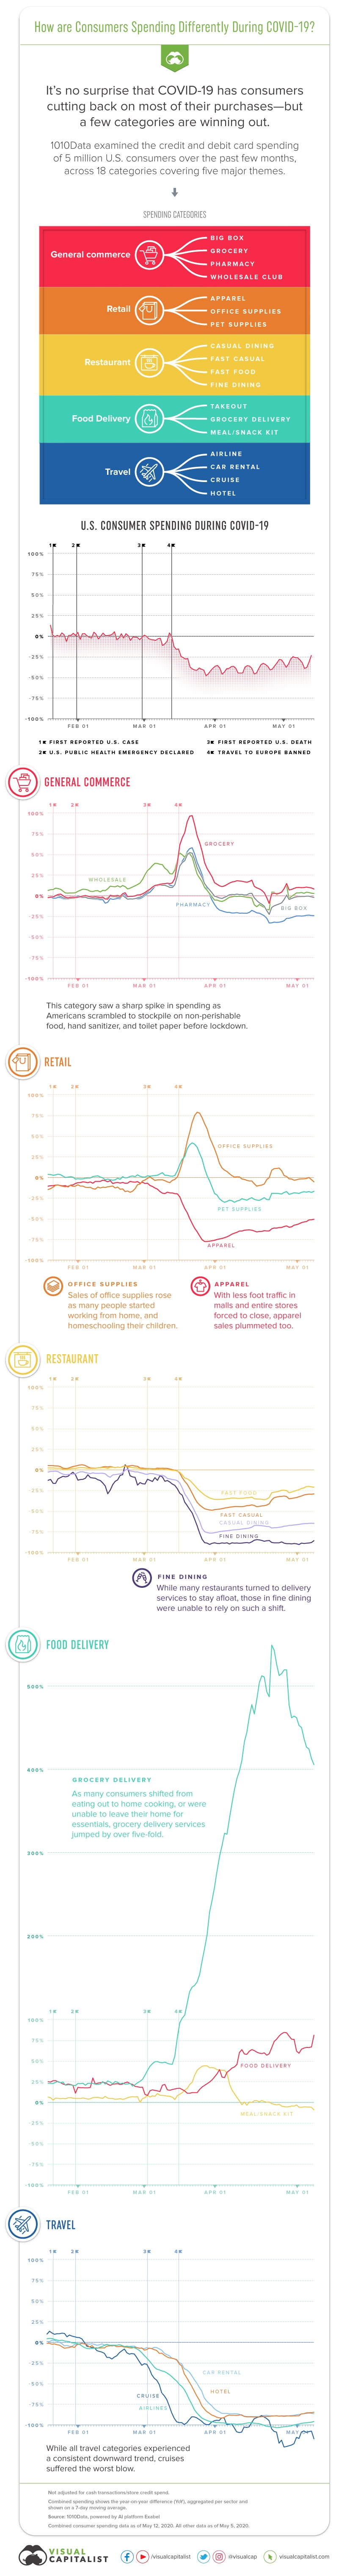 How Are Consumers Spending Differently During COVID-19 #infographic